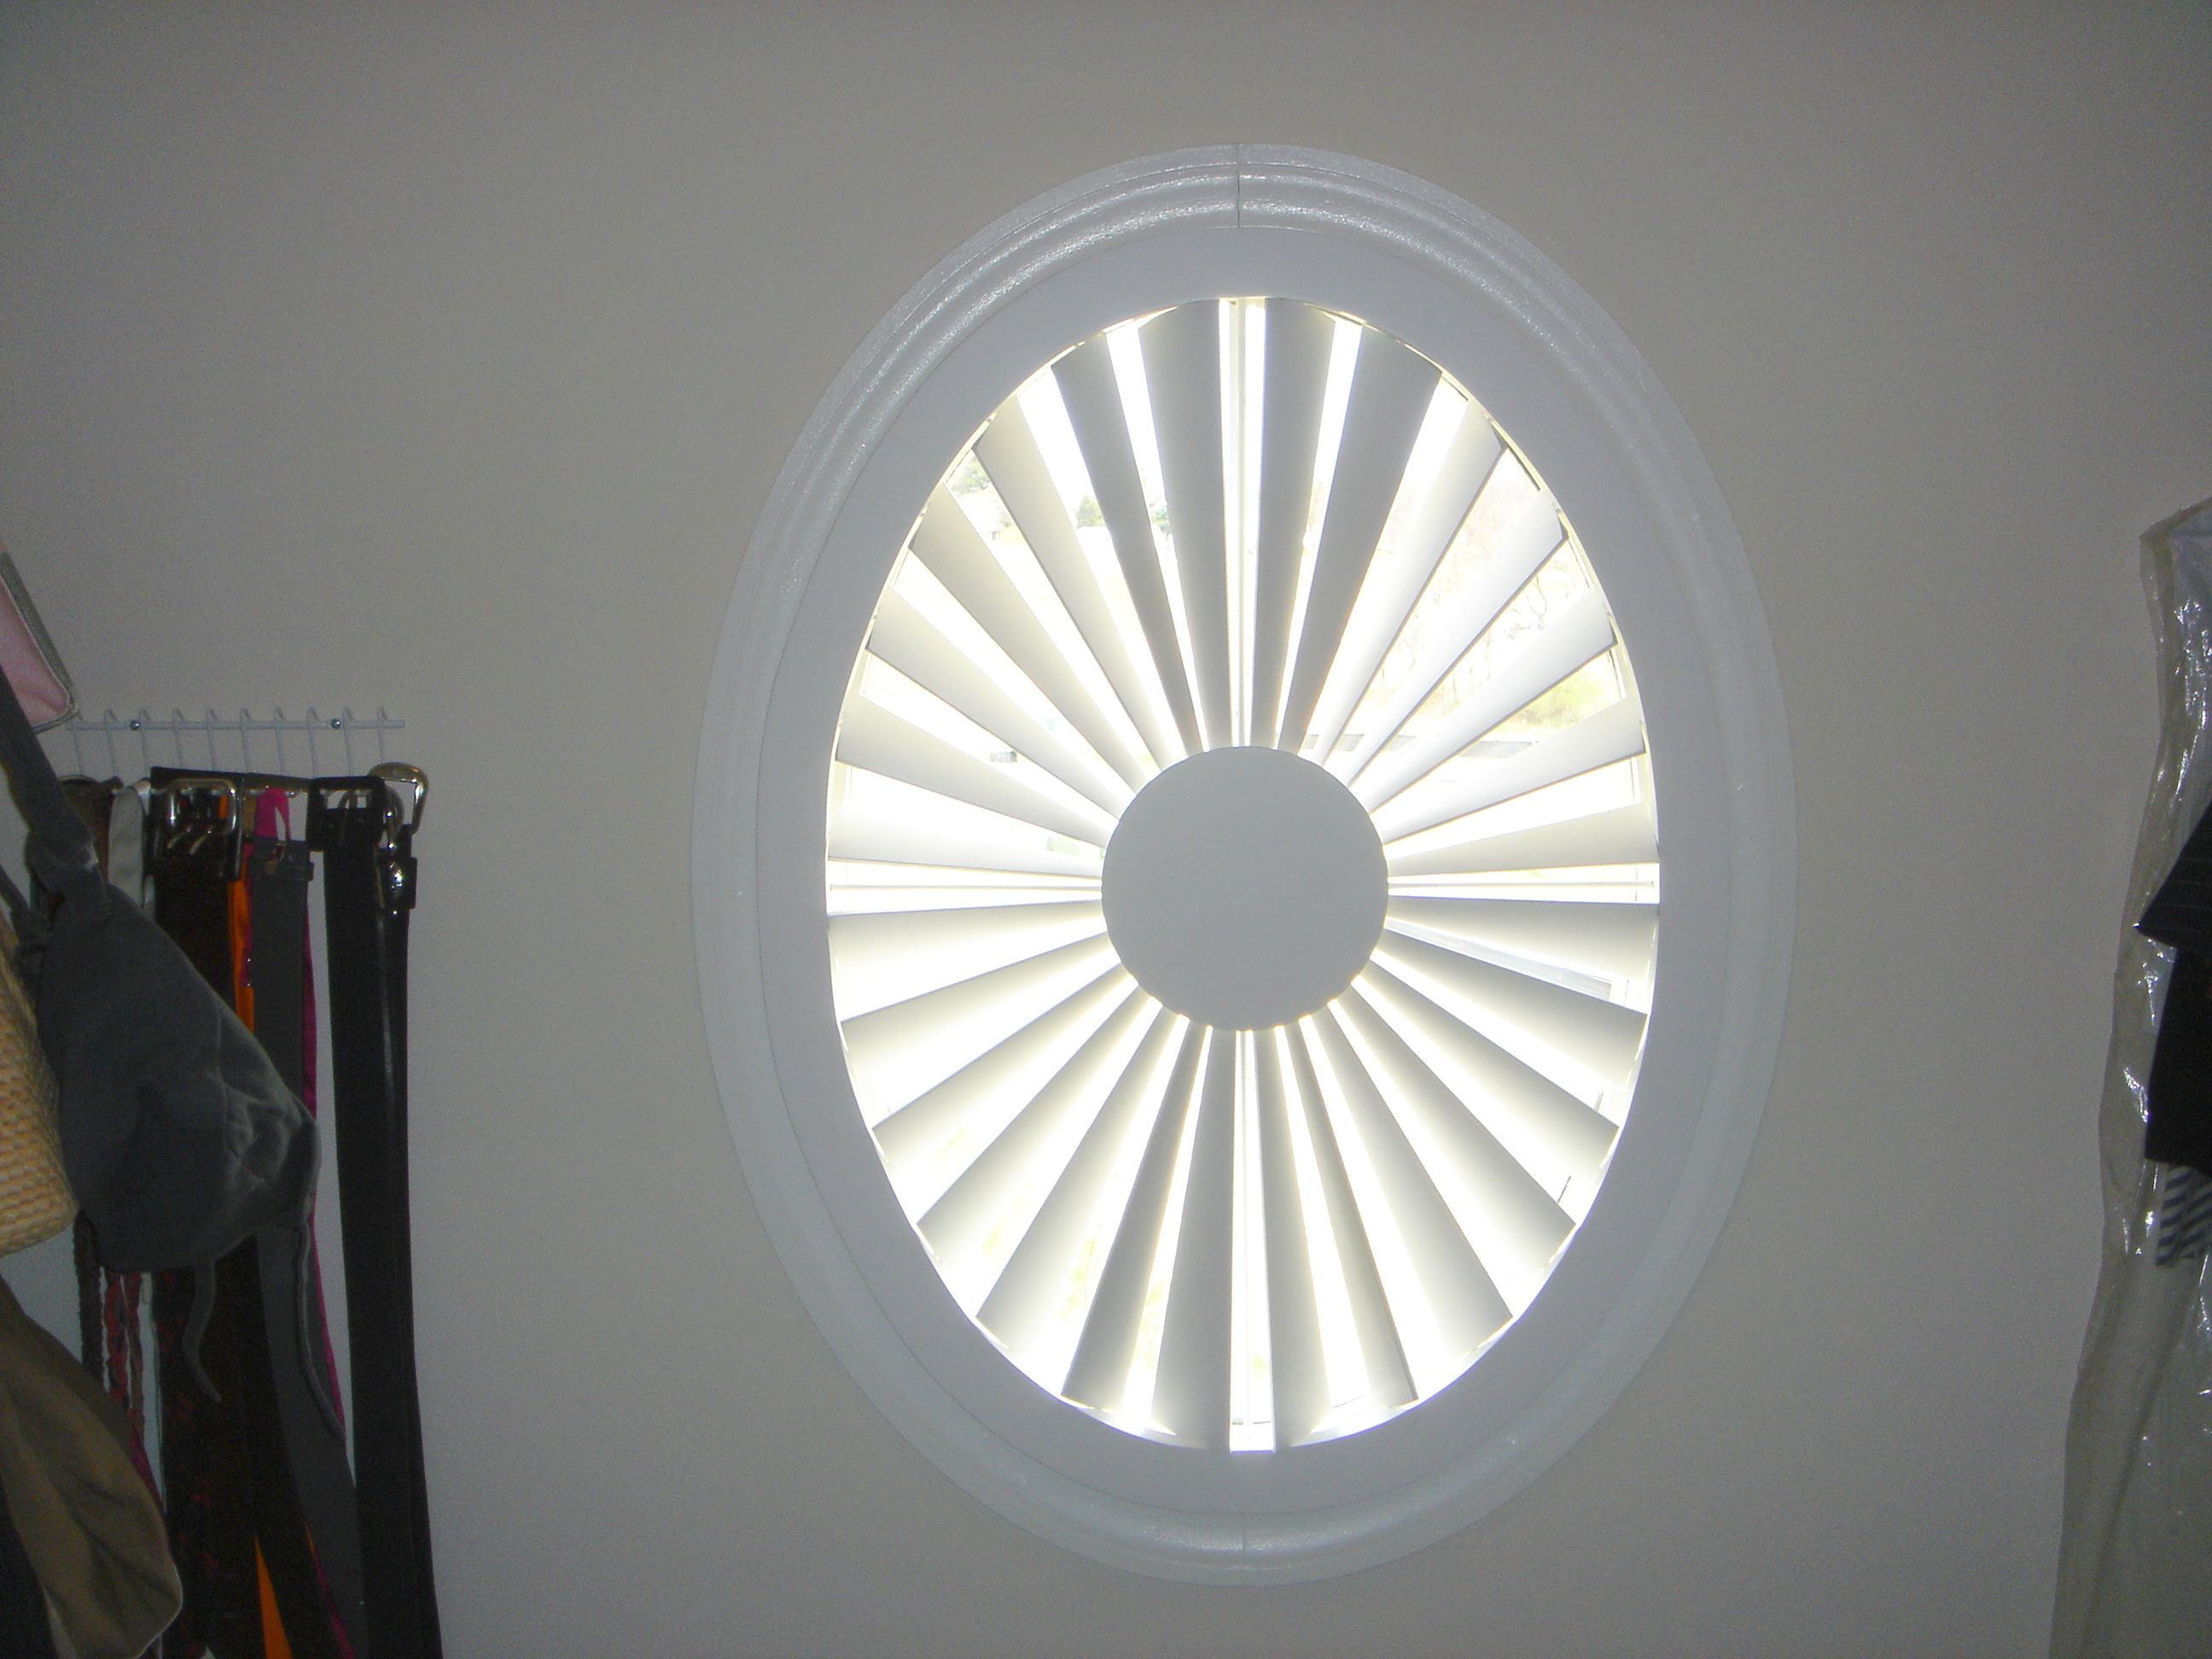 Circular Window Covered With Shutters By The Louver